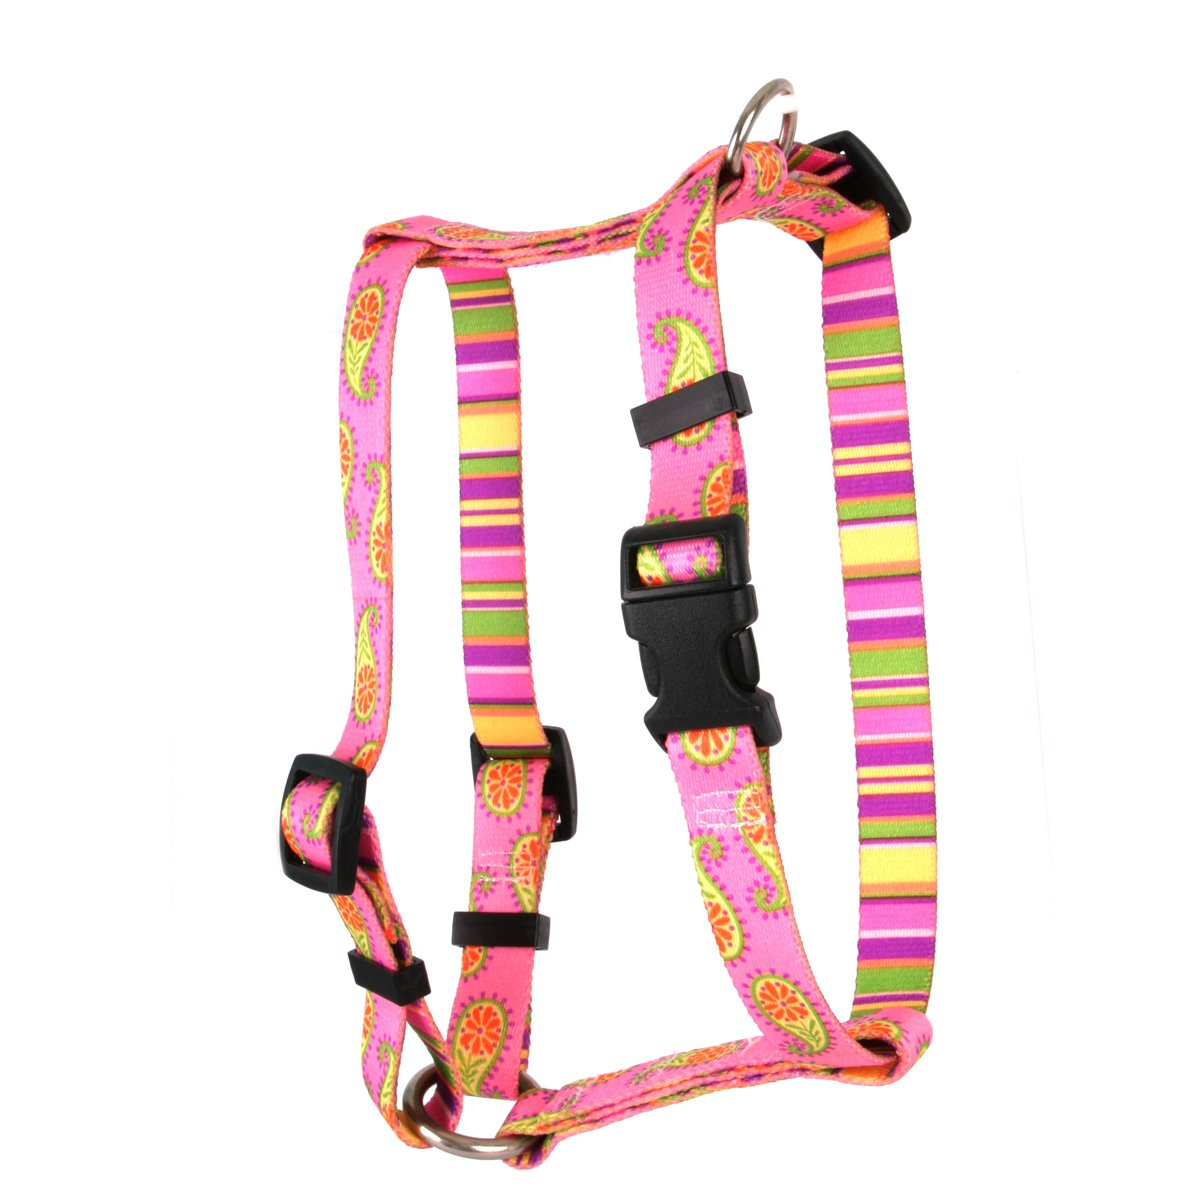 Yellow Dog Design Pink Paisley Roman Style H Dog Harness, X-Small-3/8 Wide and fits Chest of 8 to 14''